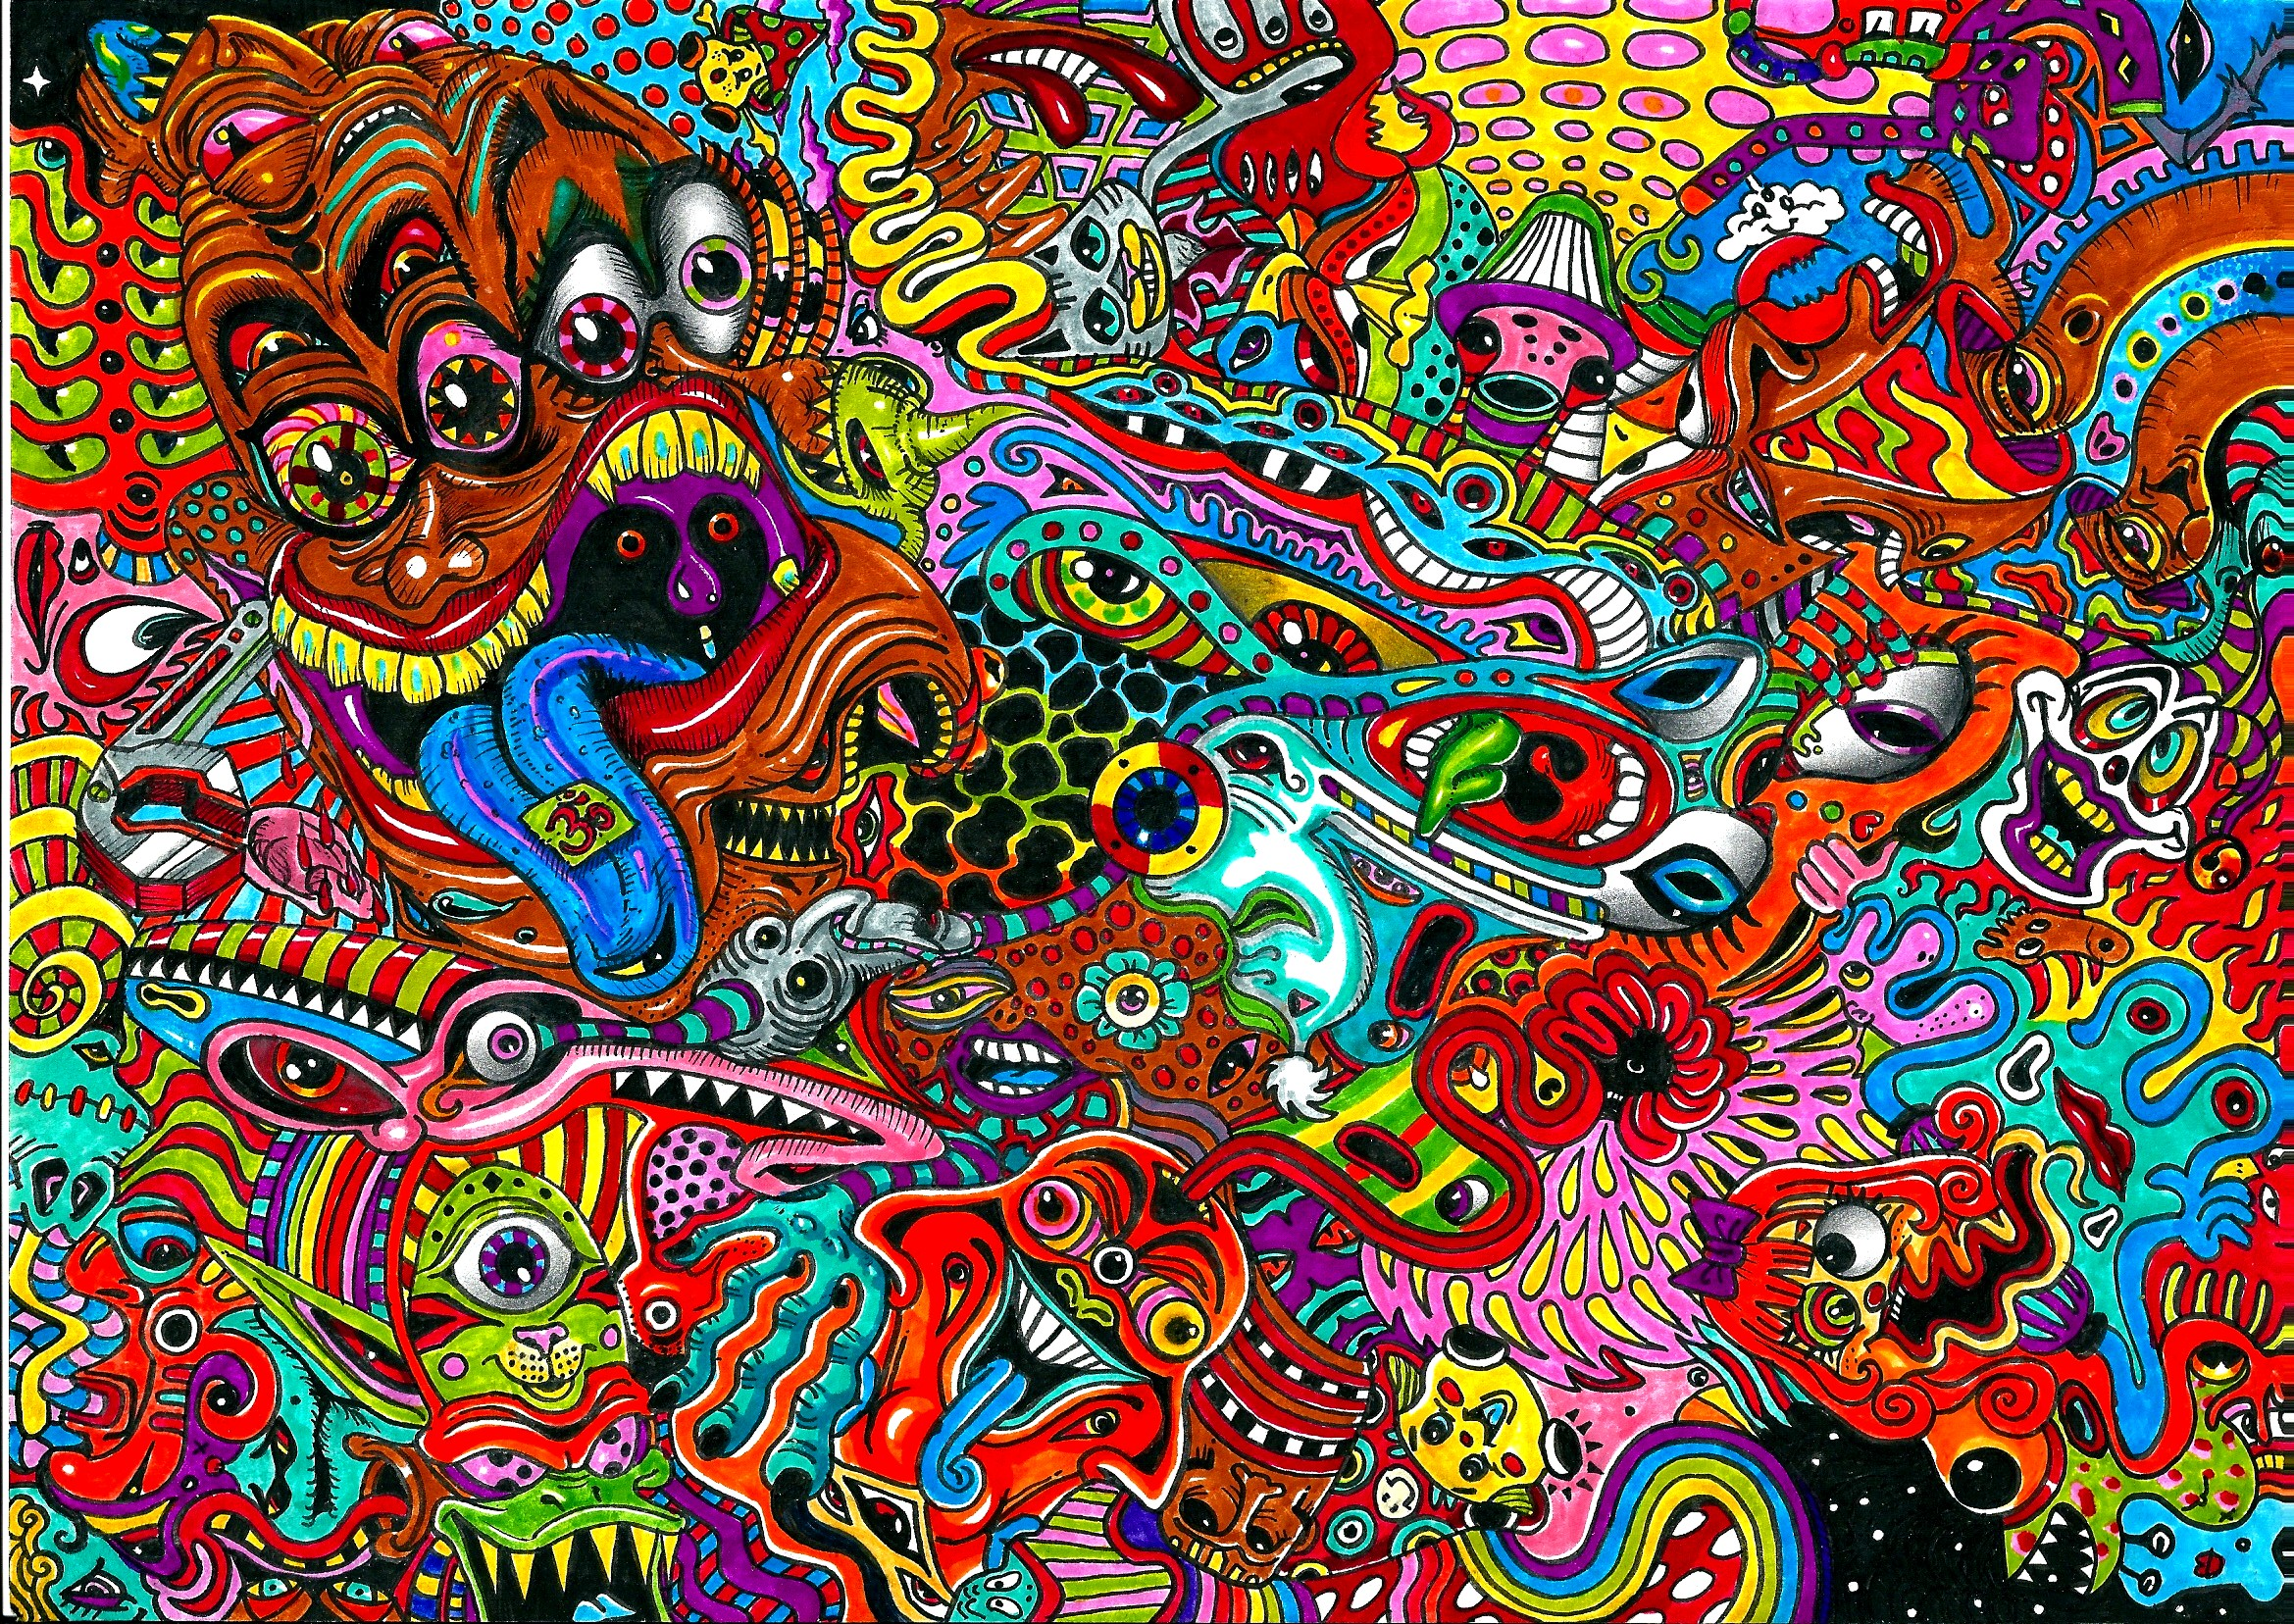 #trippy #art #wow #cool #crazy #weird #colorful #rainbow # ... |Crazy Trippy Drawings